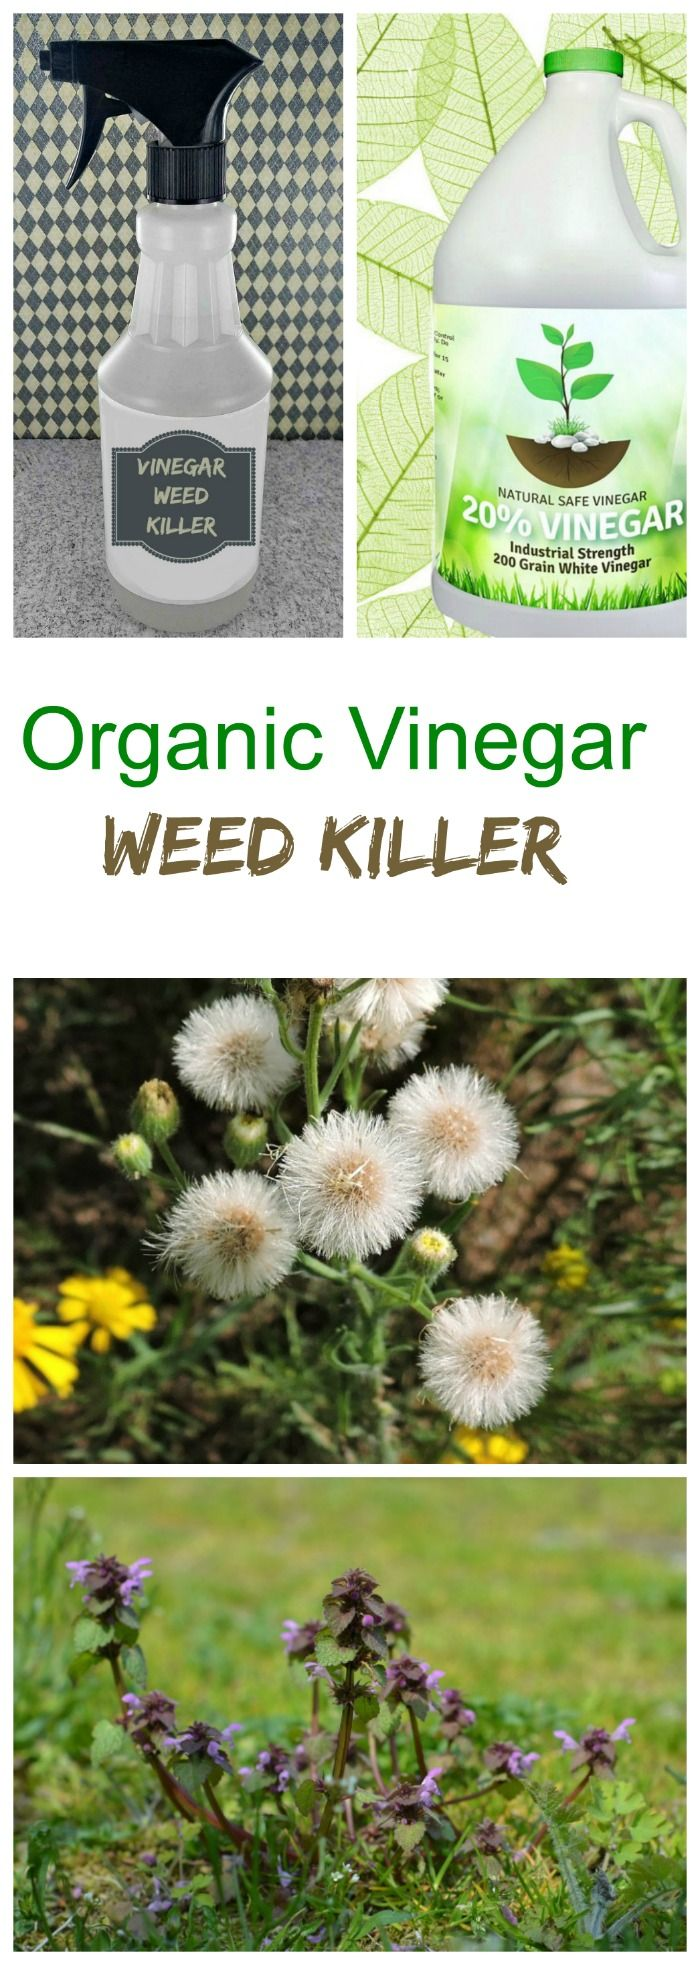 Weeds in flower beds organic killer - This Vinegar Weed Killer Uses Organic Or Horticultural Vinegar To Kill Weeds Without The Use Of